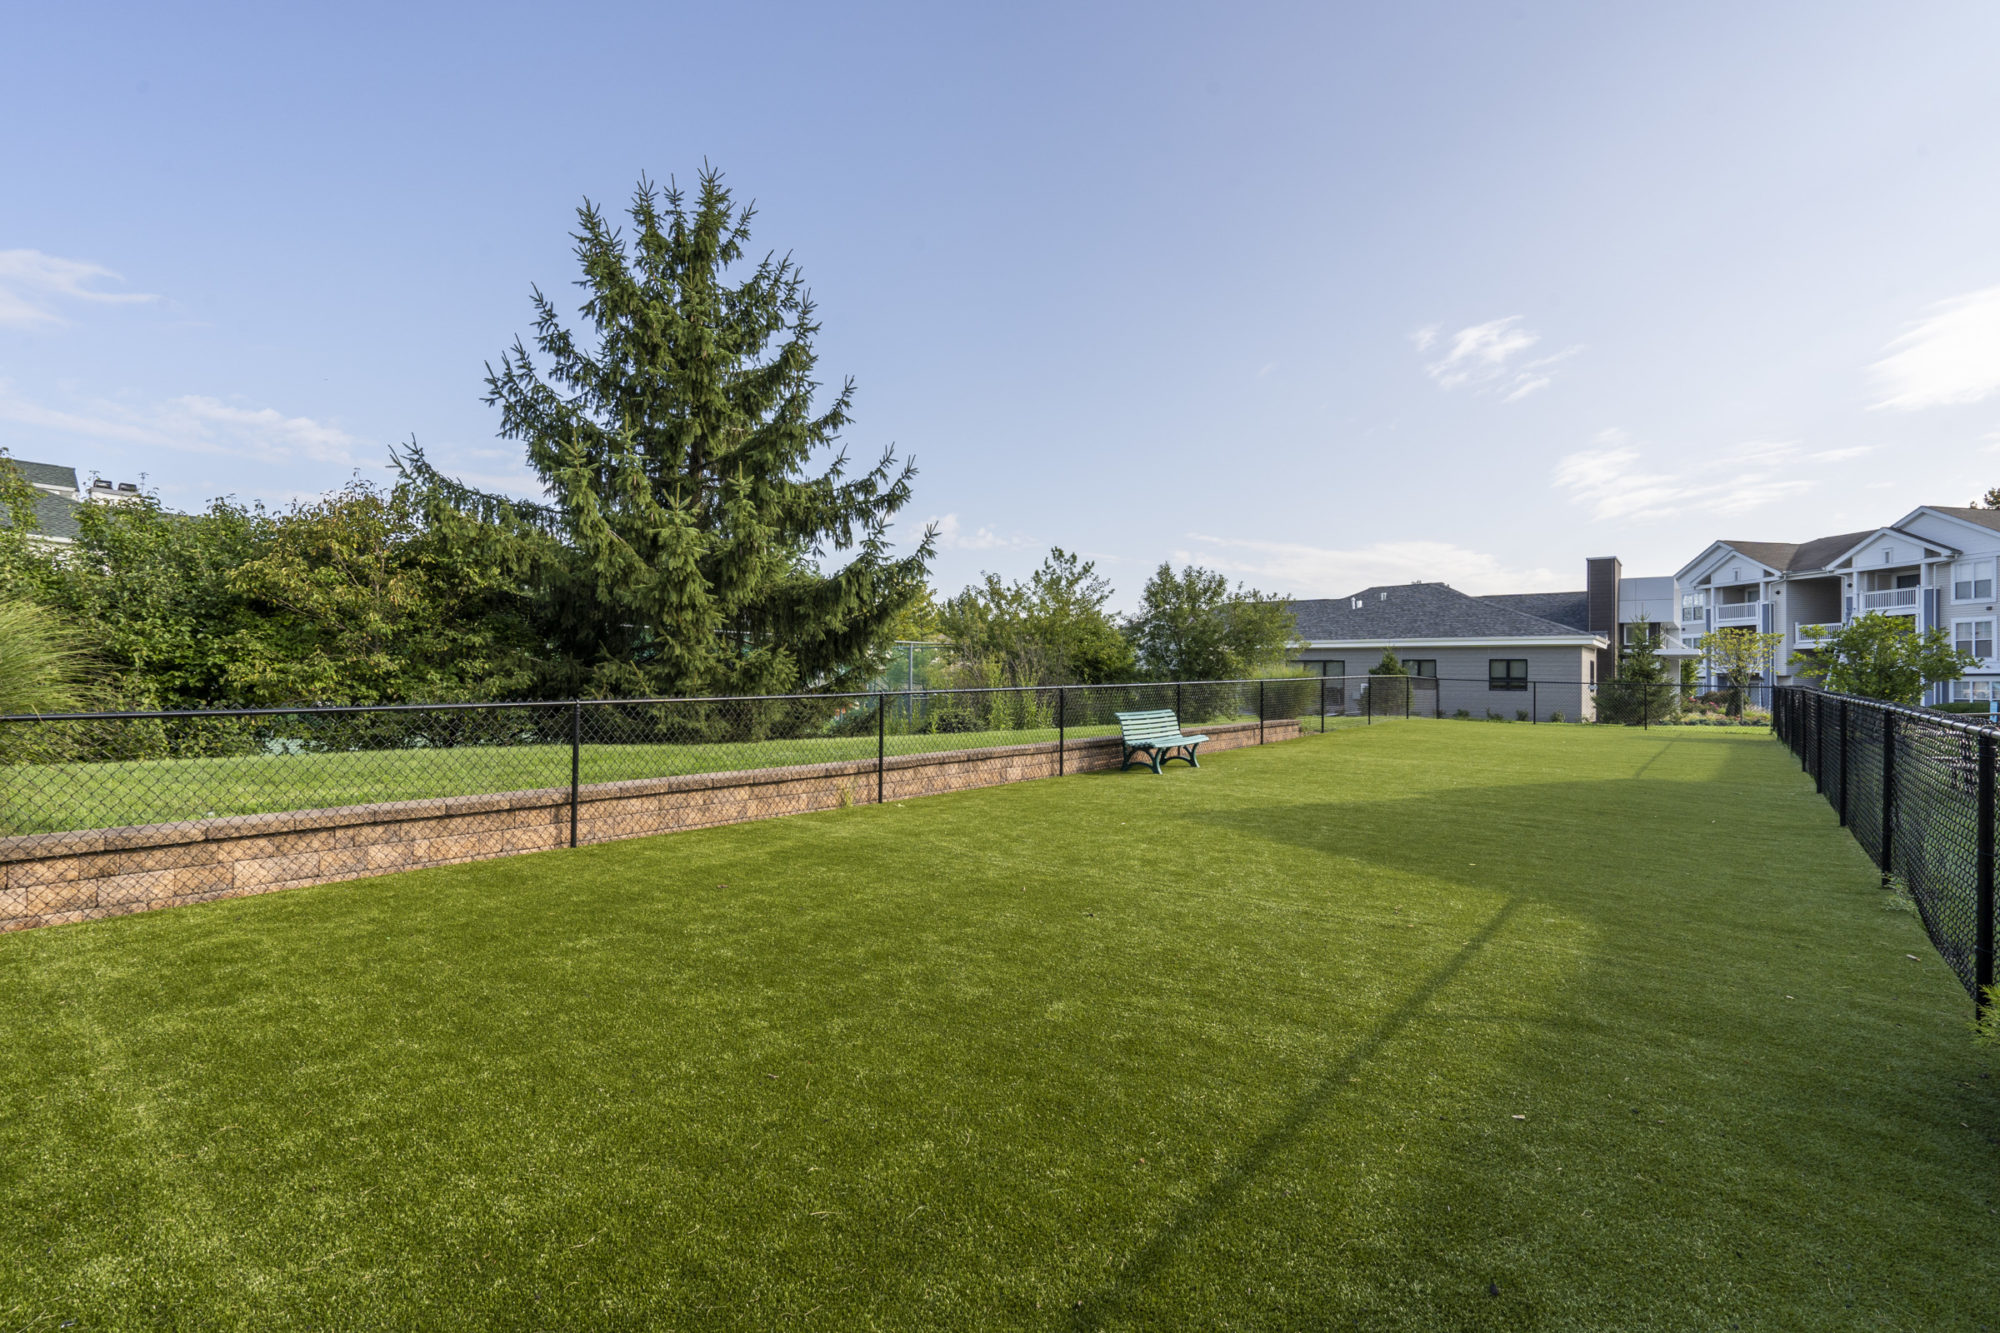 open yard space and dog park at Edge of Yardley